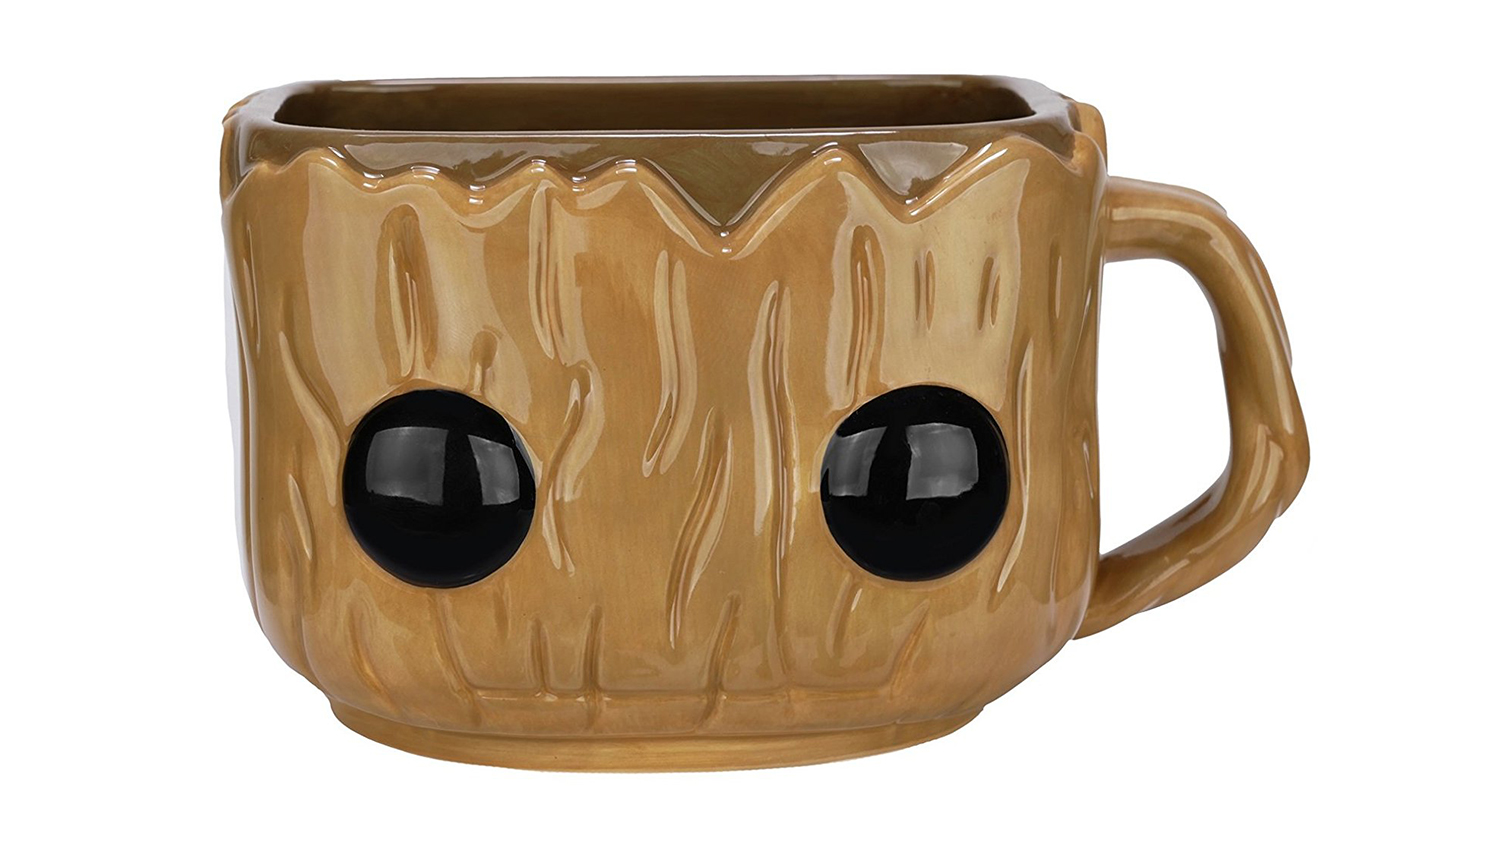 new-funko-pop-mugs-groot-FT-BLOG0617.jpg